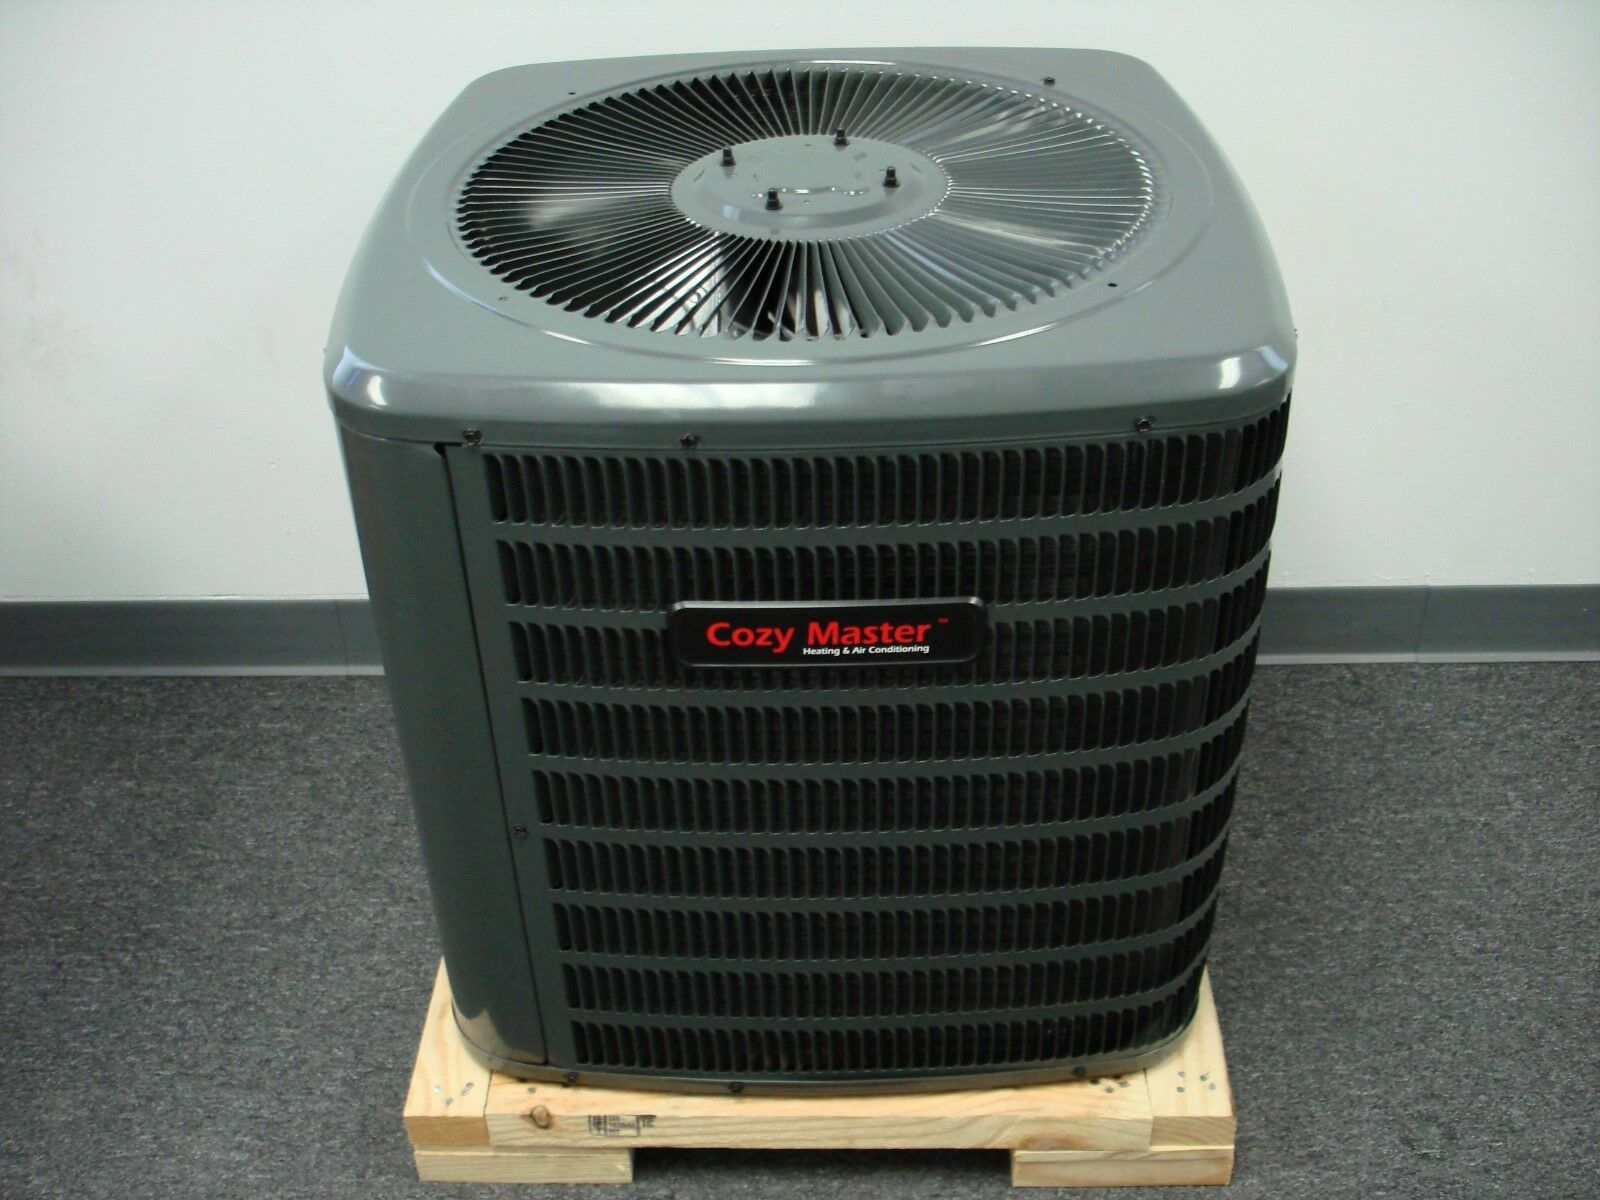 goodman ac unit. picture 1 of 3 goodman ac unit s